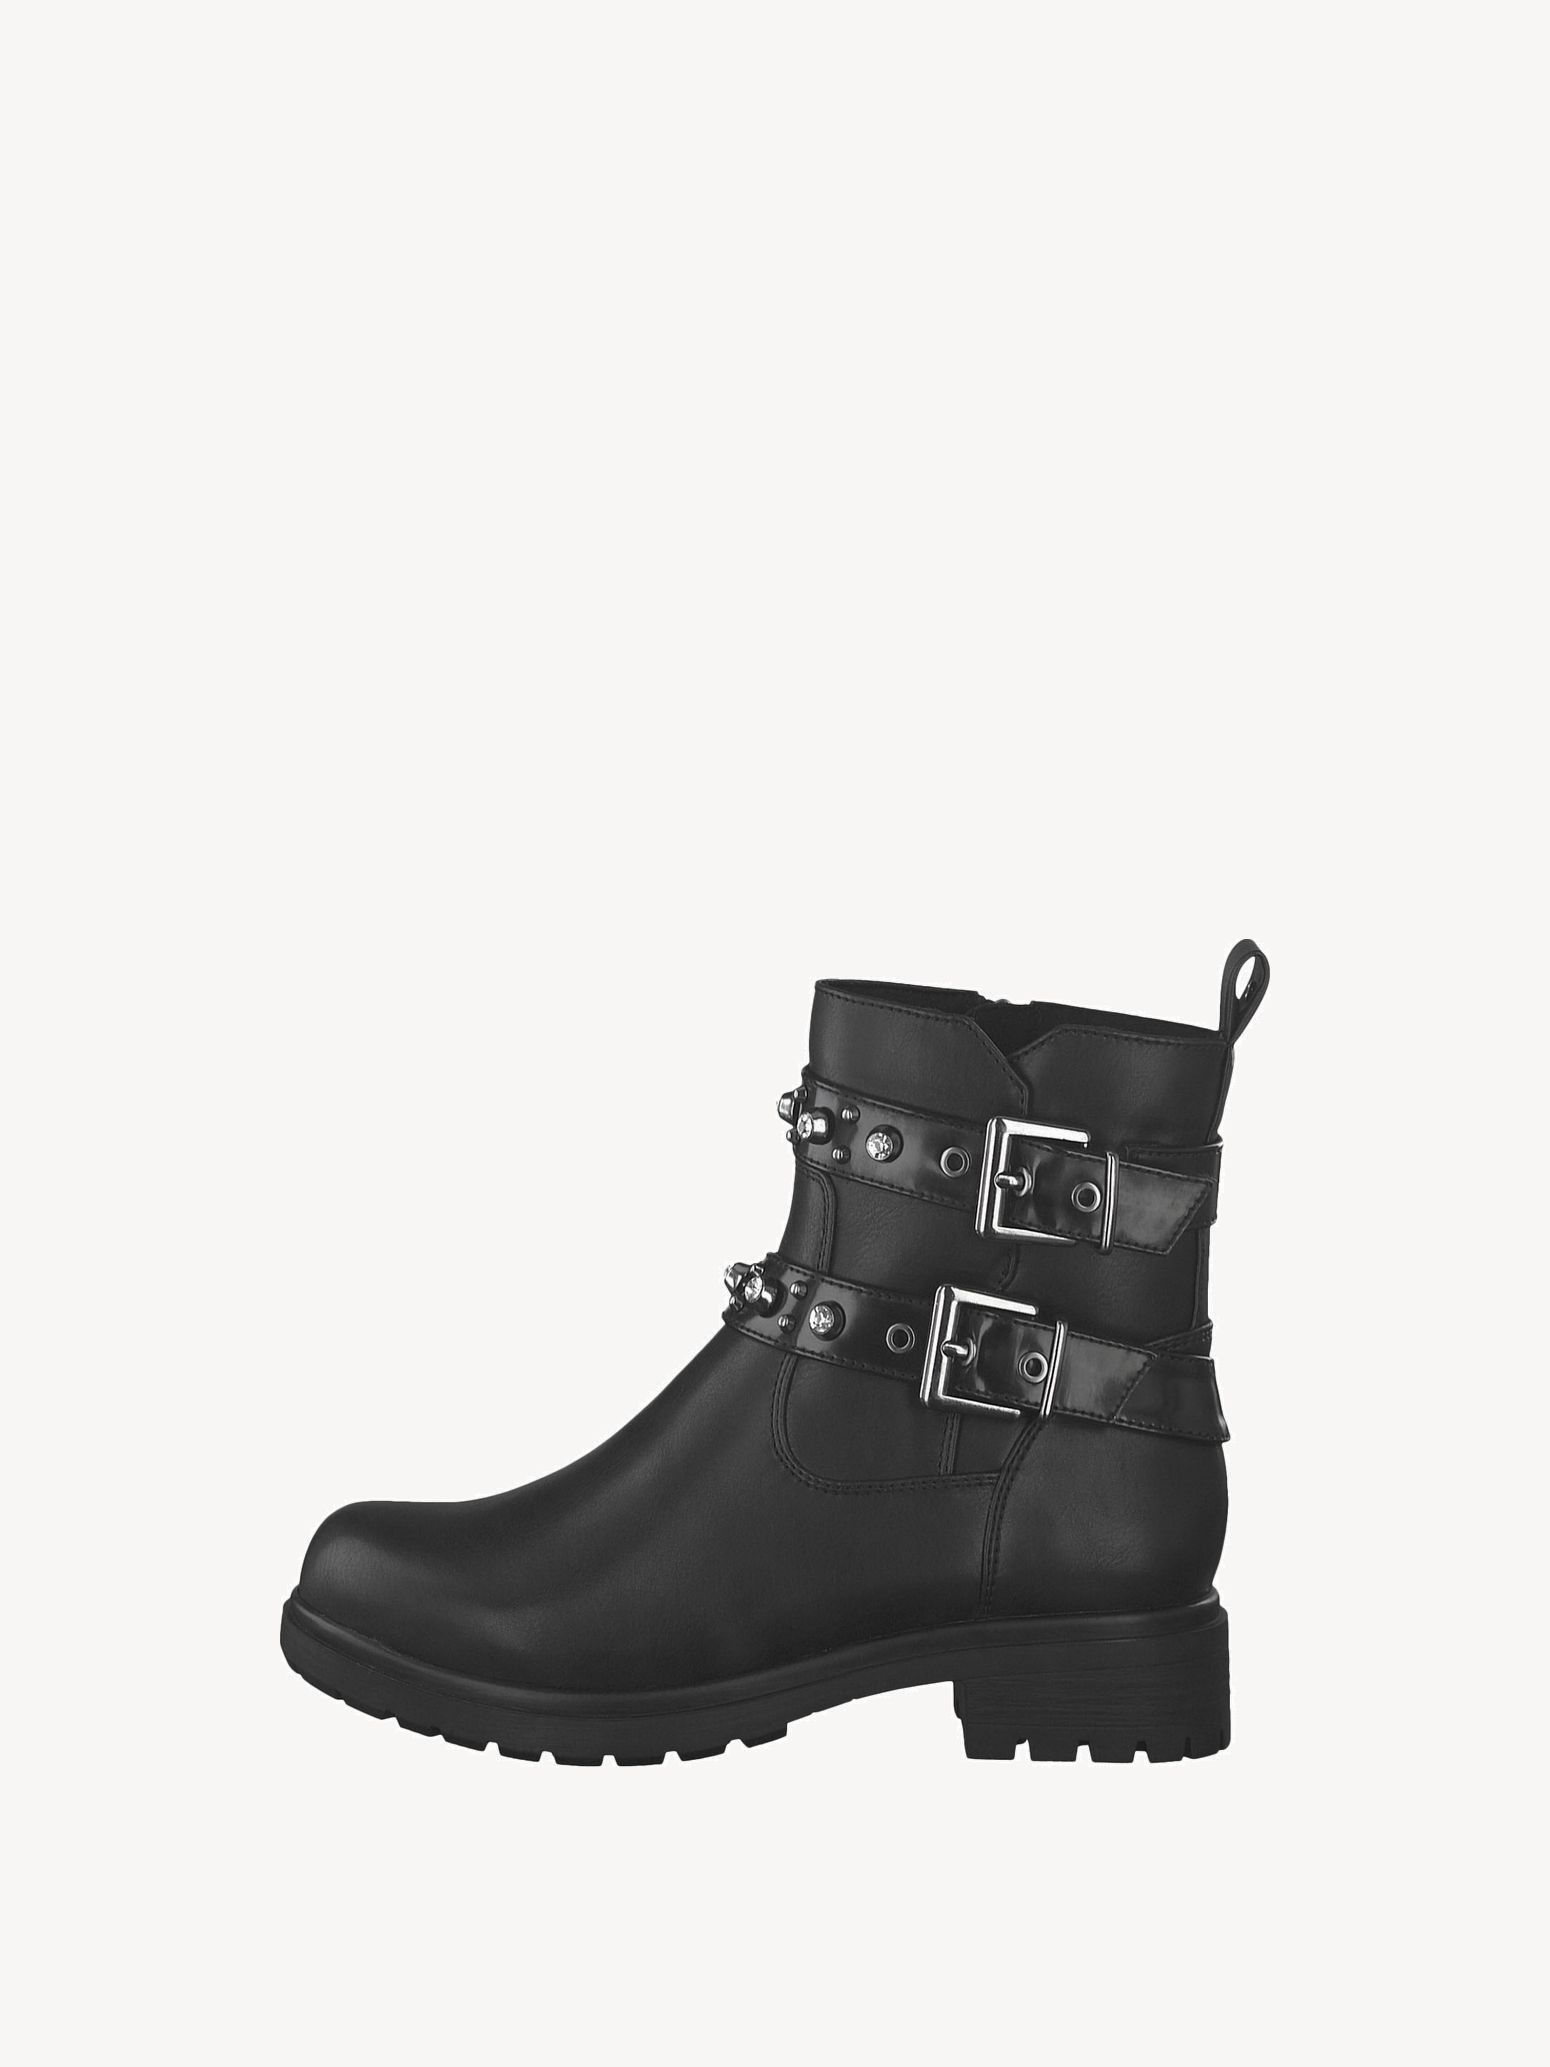 Https Tamaris de De com Stiefeletten Nm08nw